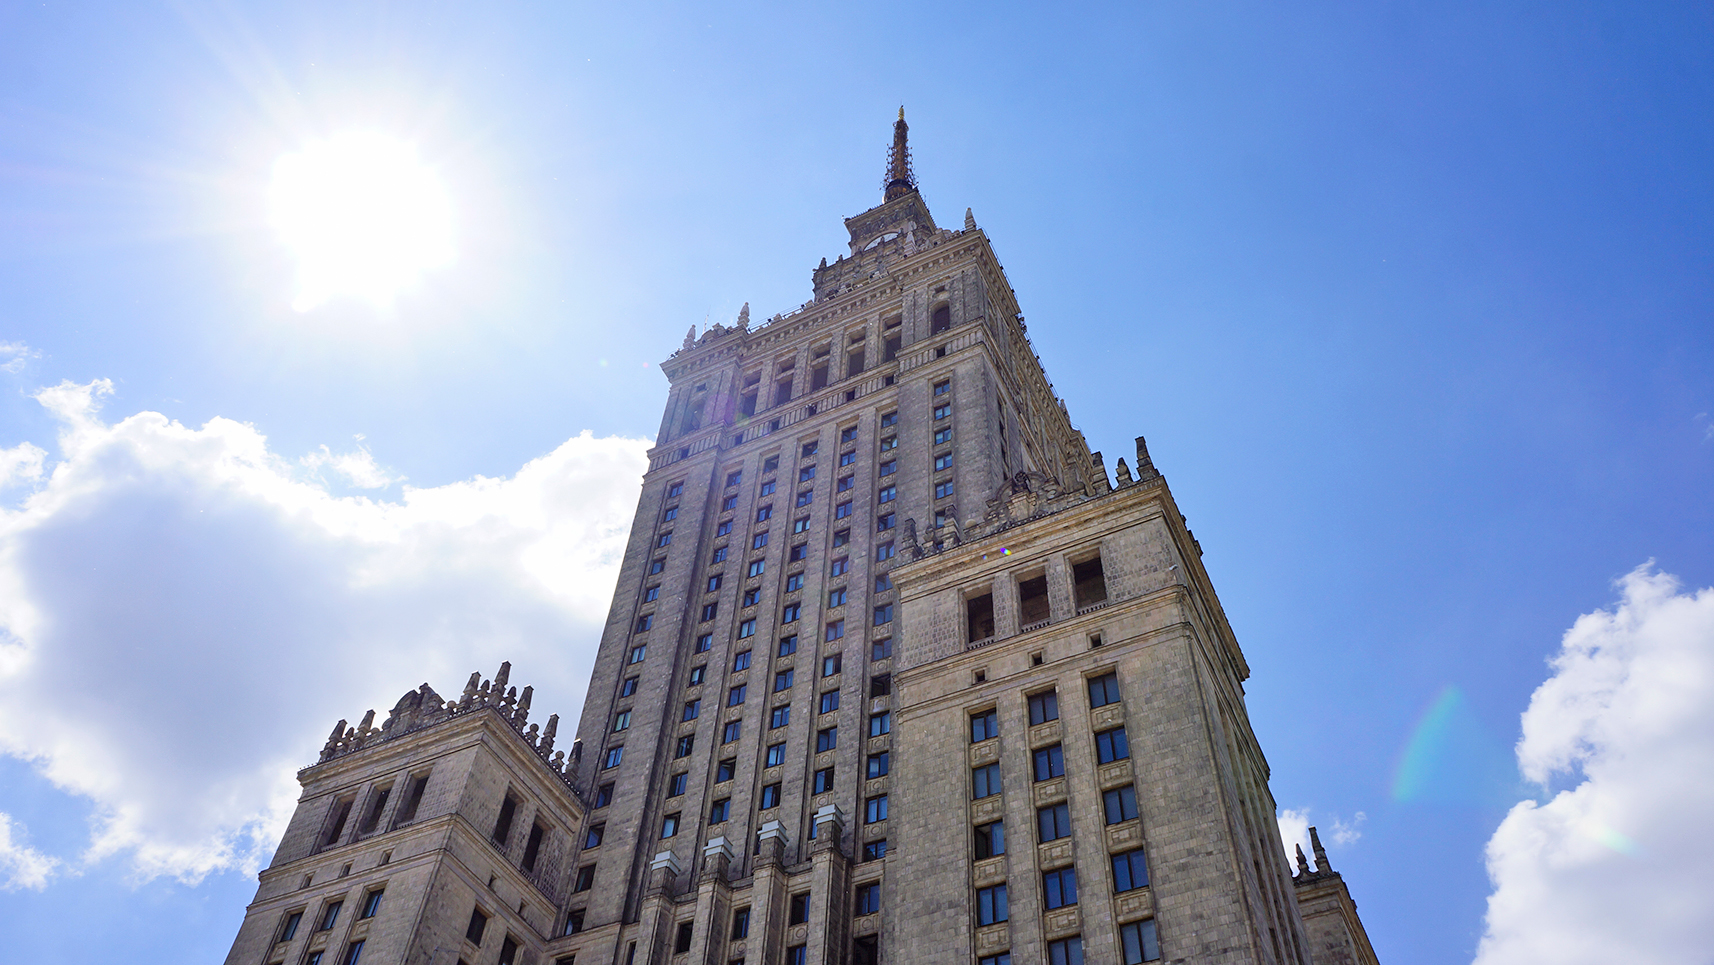 palace-of-culture-and-science-warsaw-poland-1